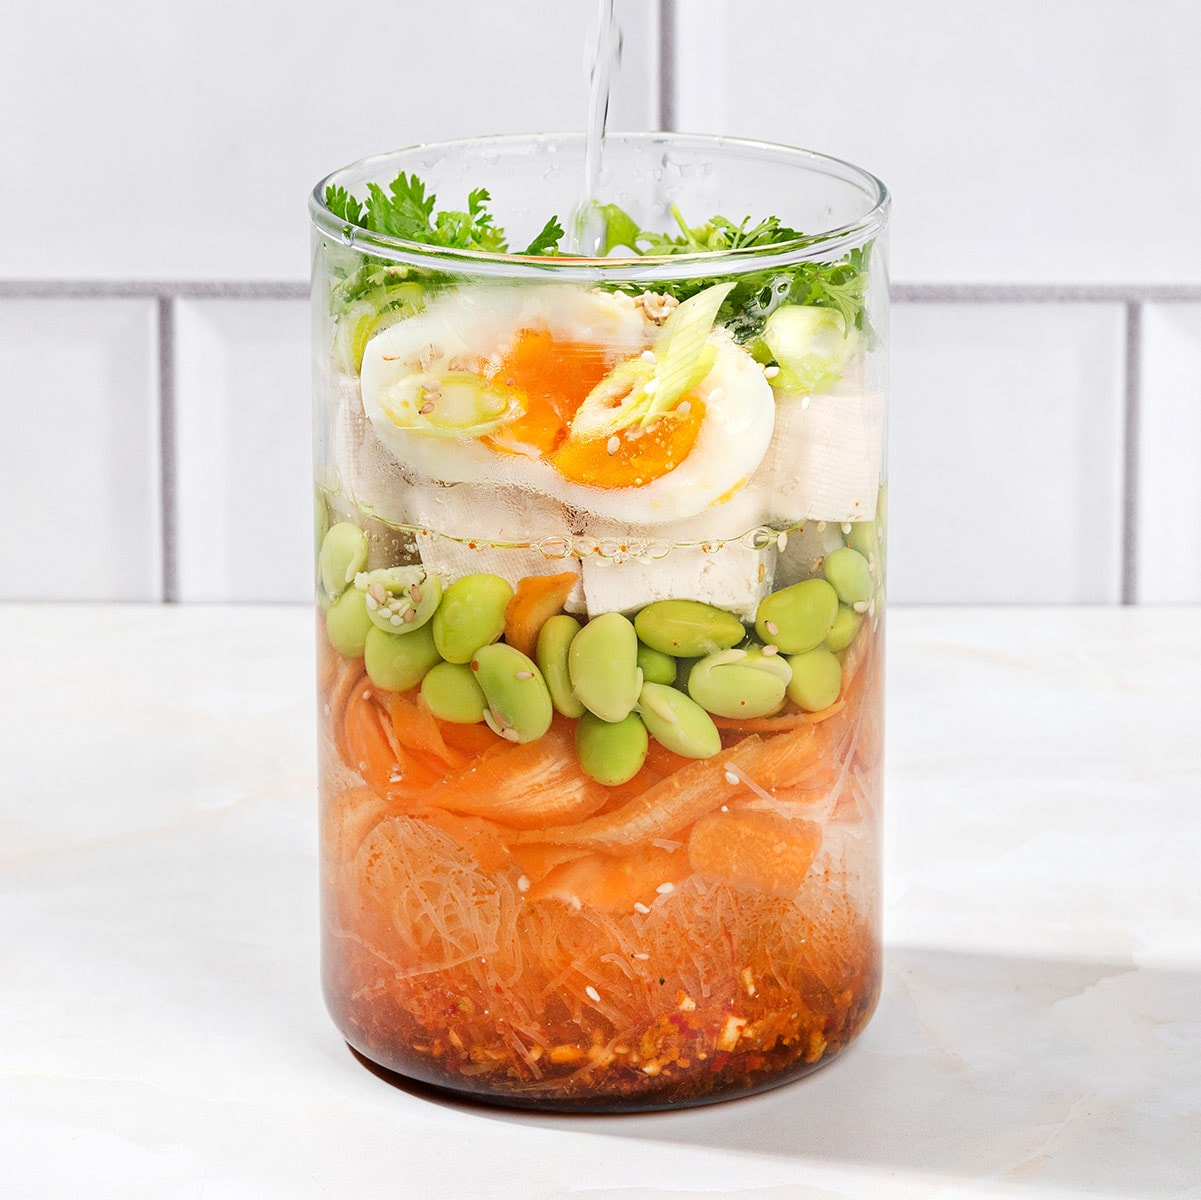 18 vegetarian lunch ideas to pack for work all delish forumfinder Images